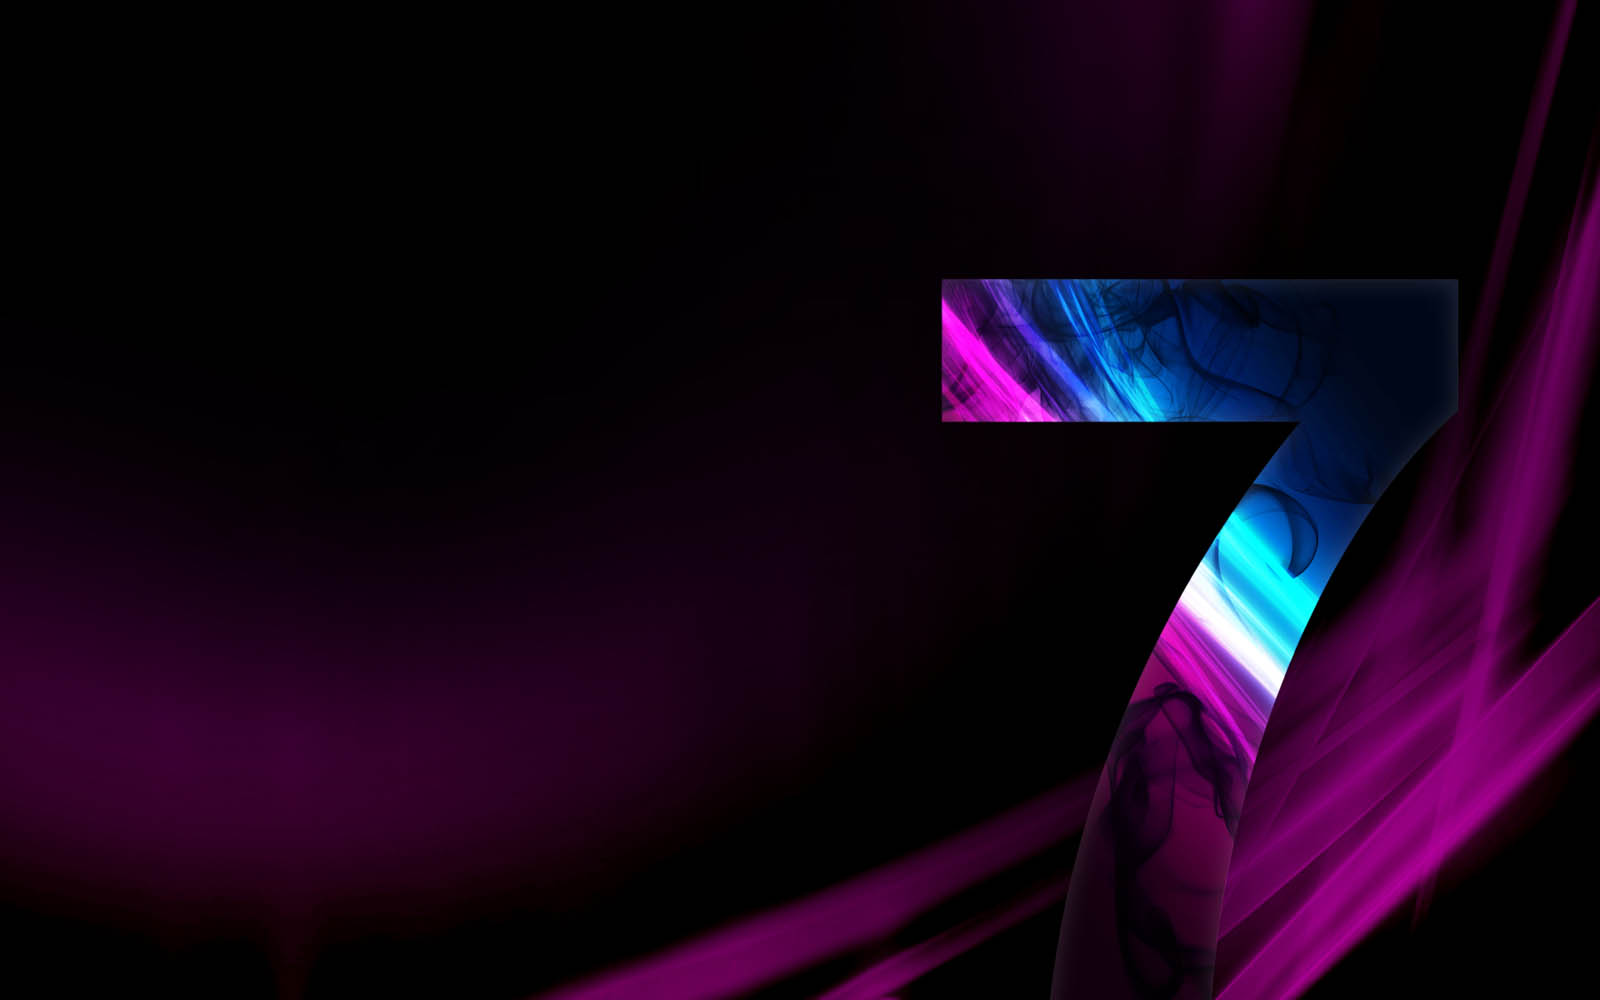 free 3d wallpapers download: windows 7 style wallpapers